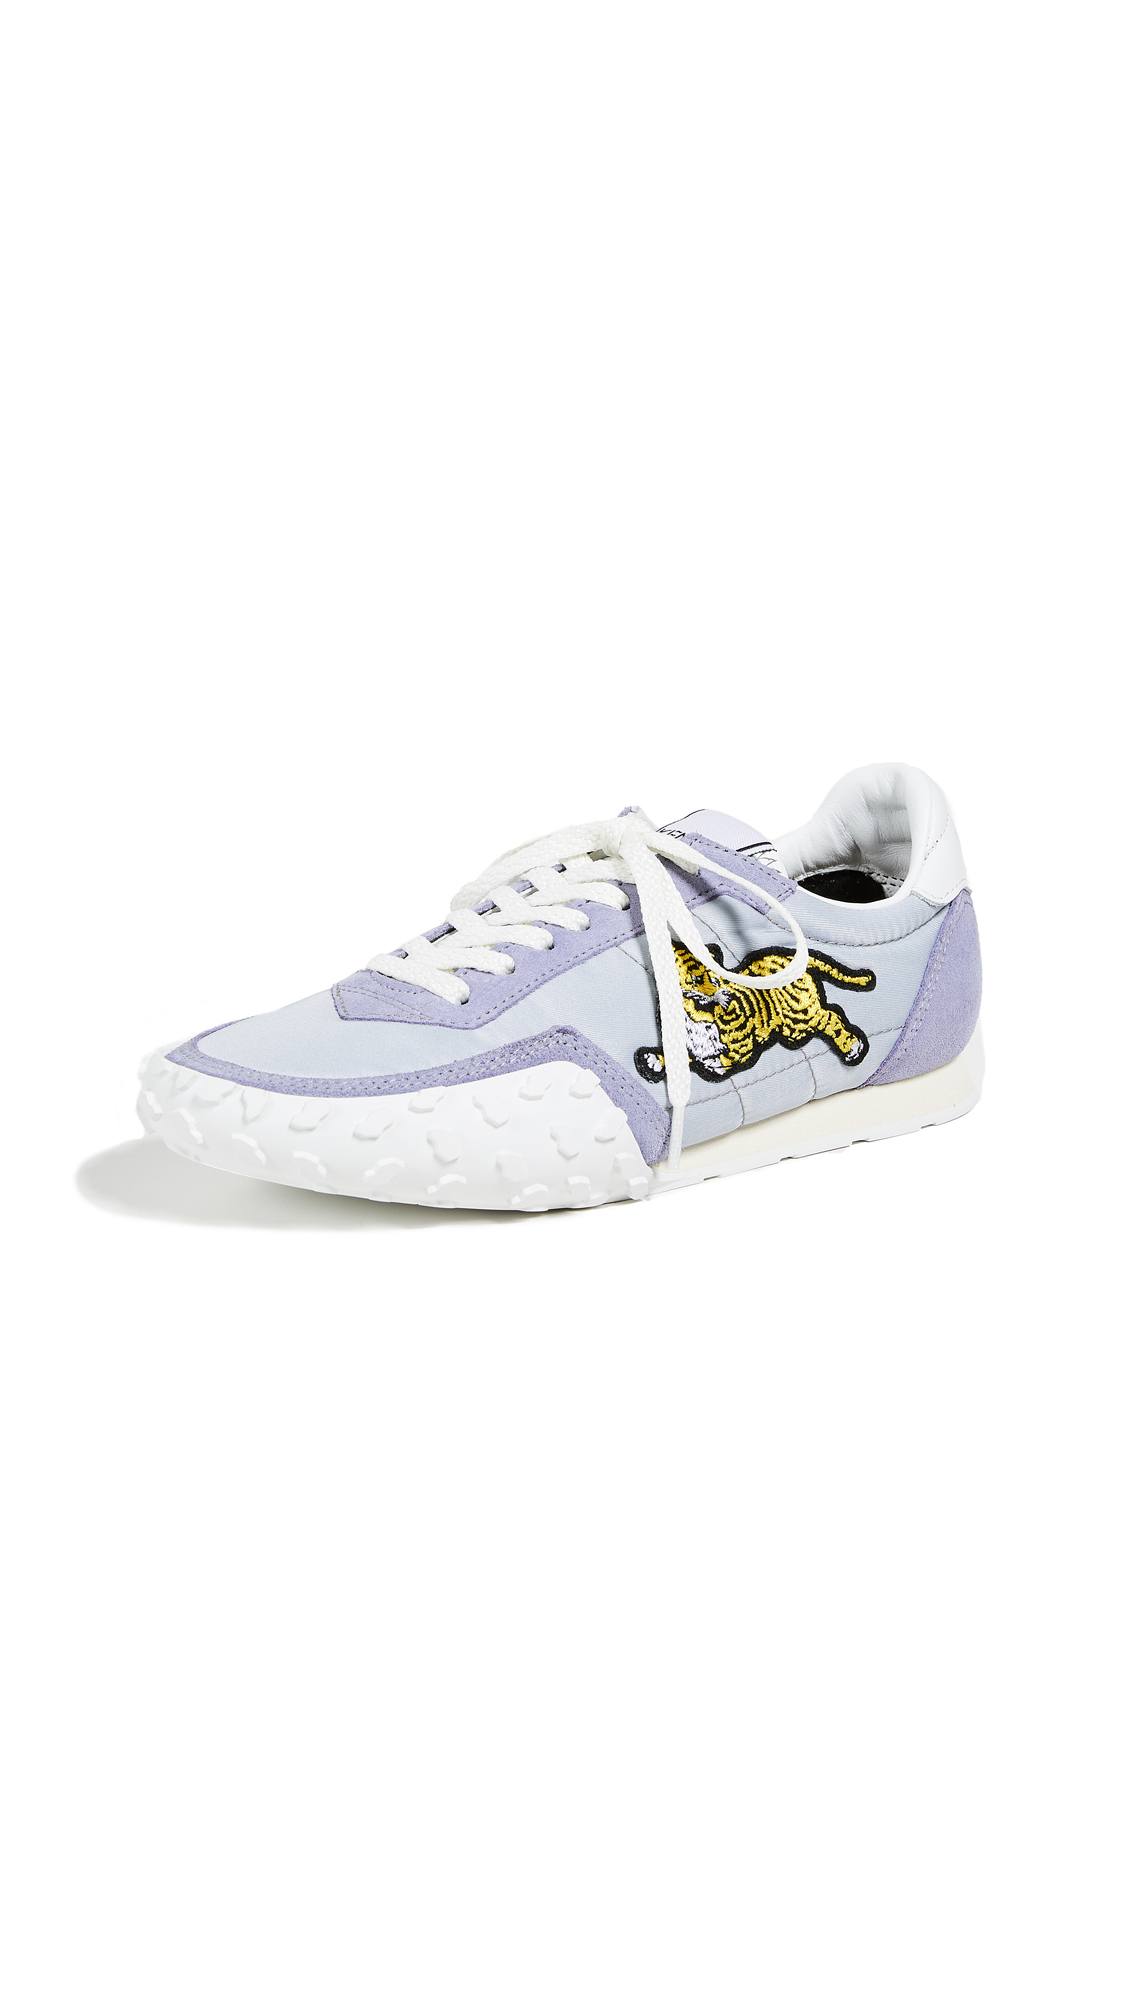 KENZO Kenzo Move Sneakers - Light Blue